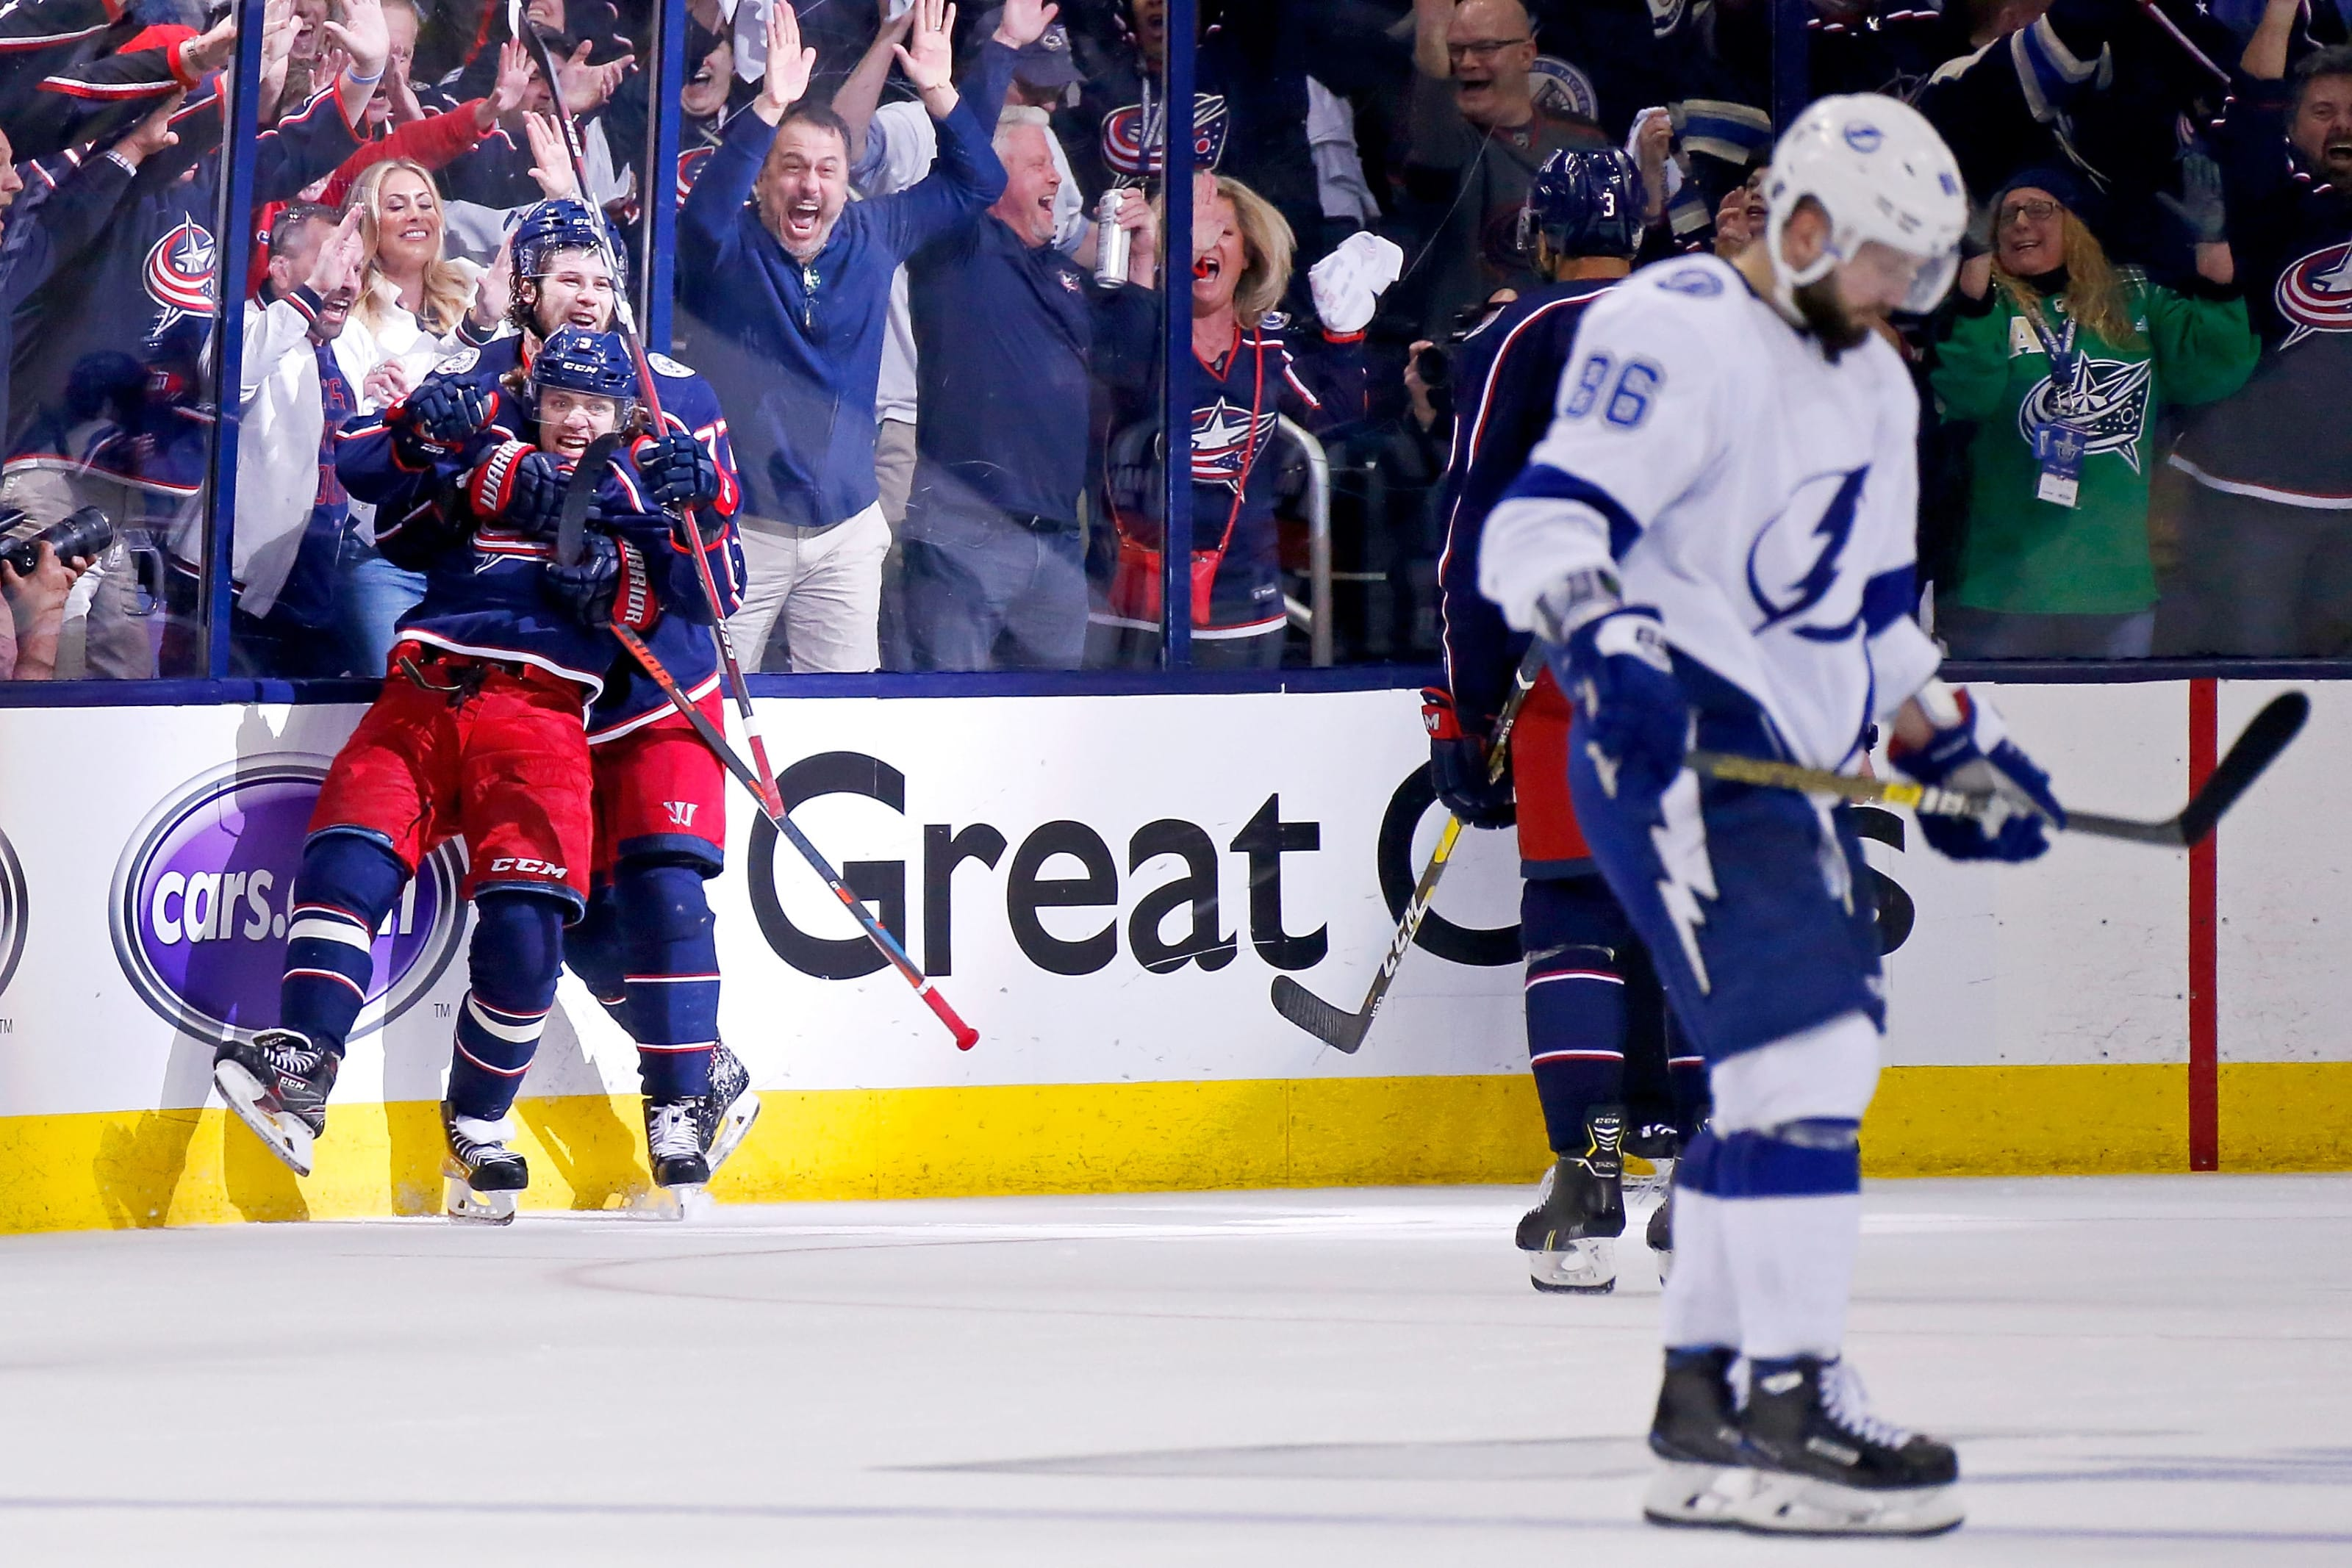 stanley cup playoffs, blue jackets, tampa bay lightning